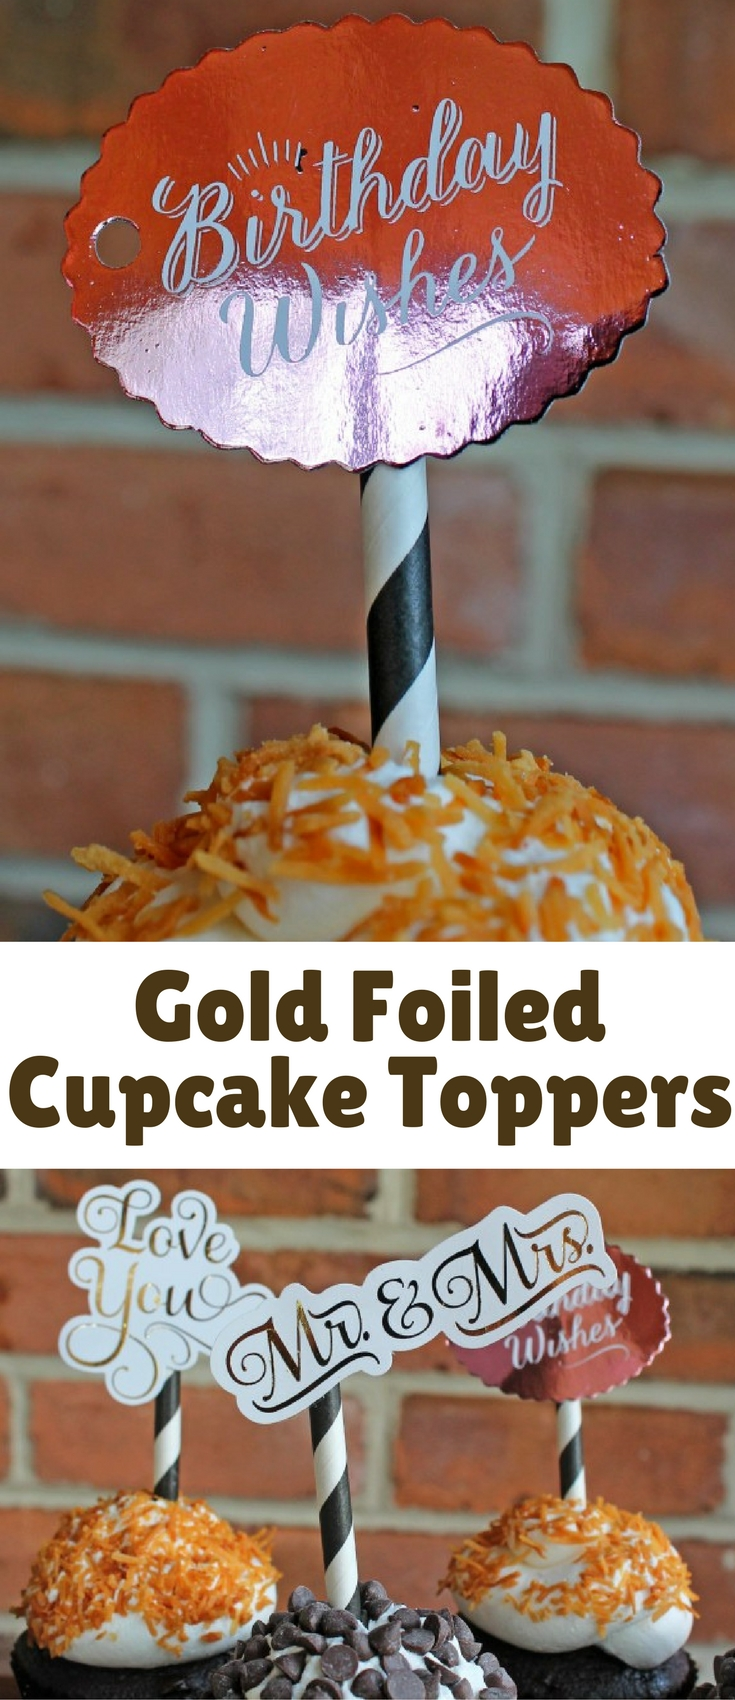 Once you see how easy it is, you will have gold foiled everything!! Cupcake toppers, printables, gift tags, banners… I can't stop!